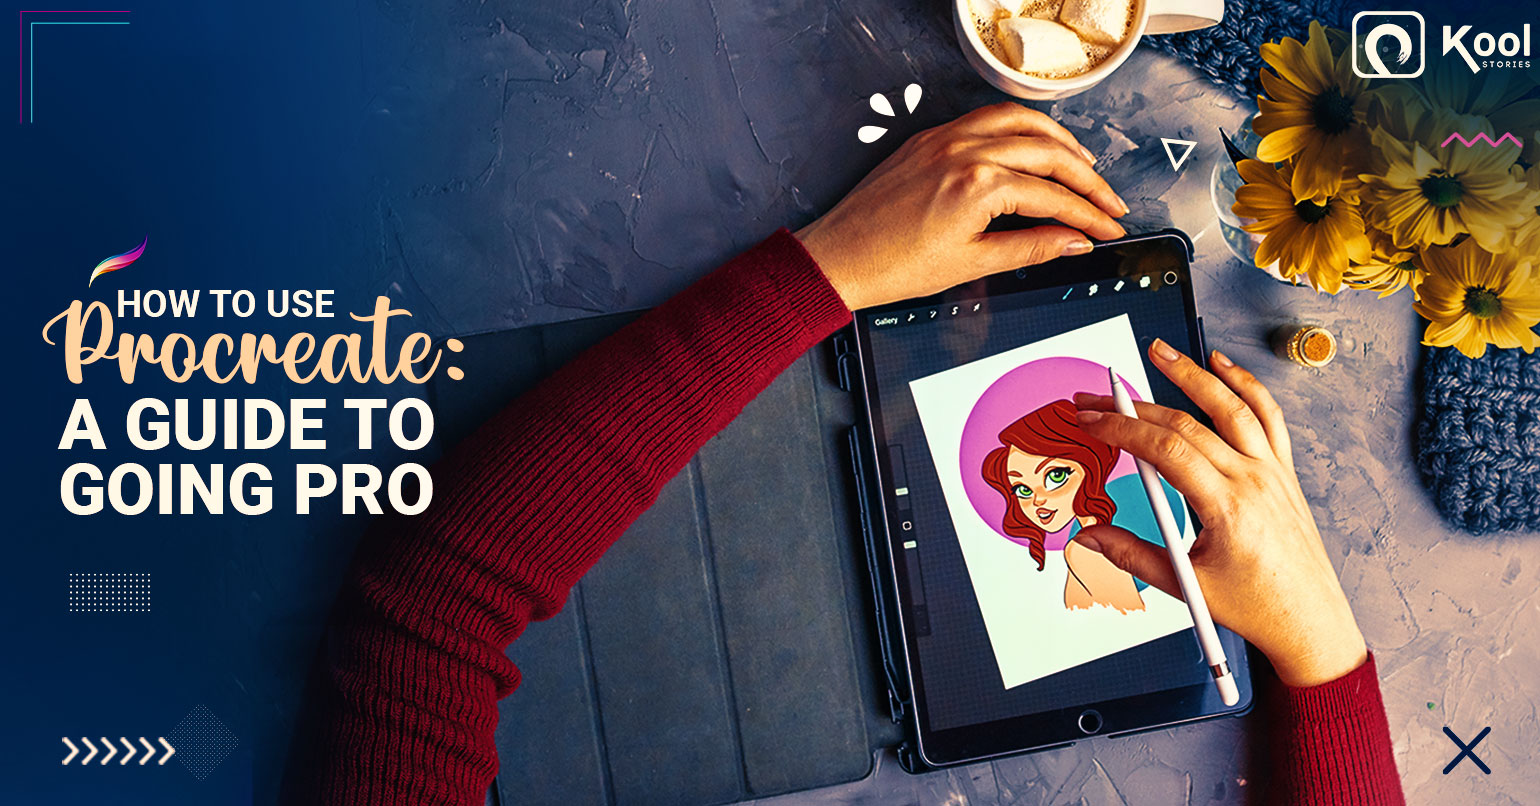 How To Use Procreate: A Guide To Going Pro